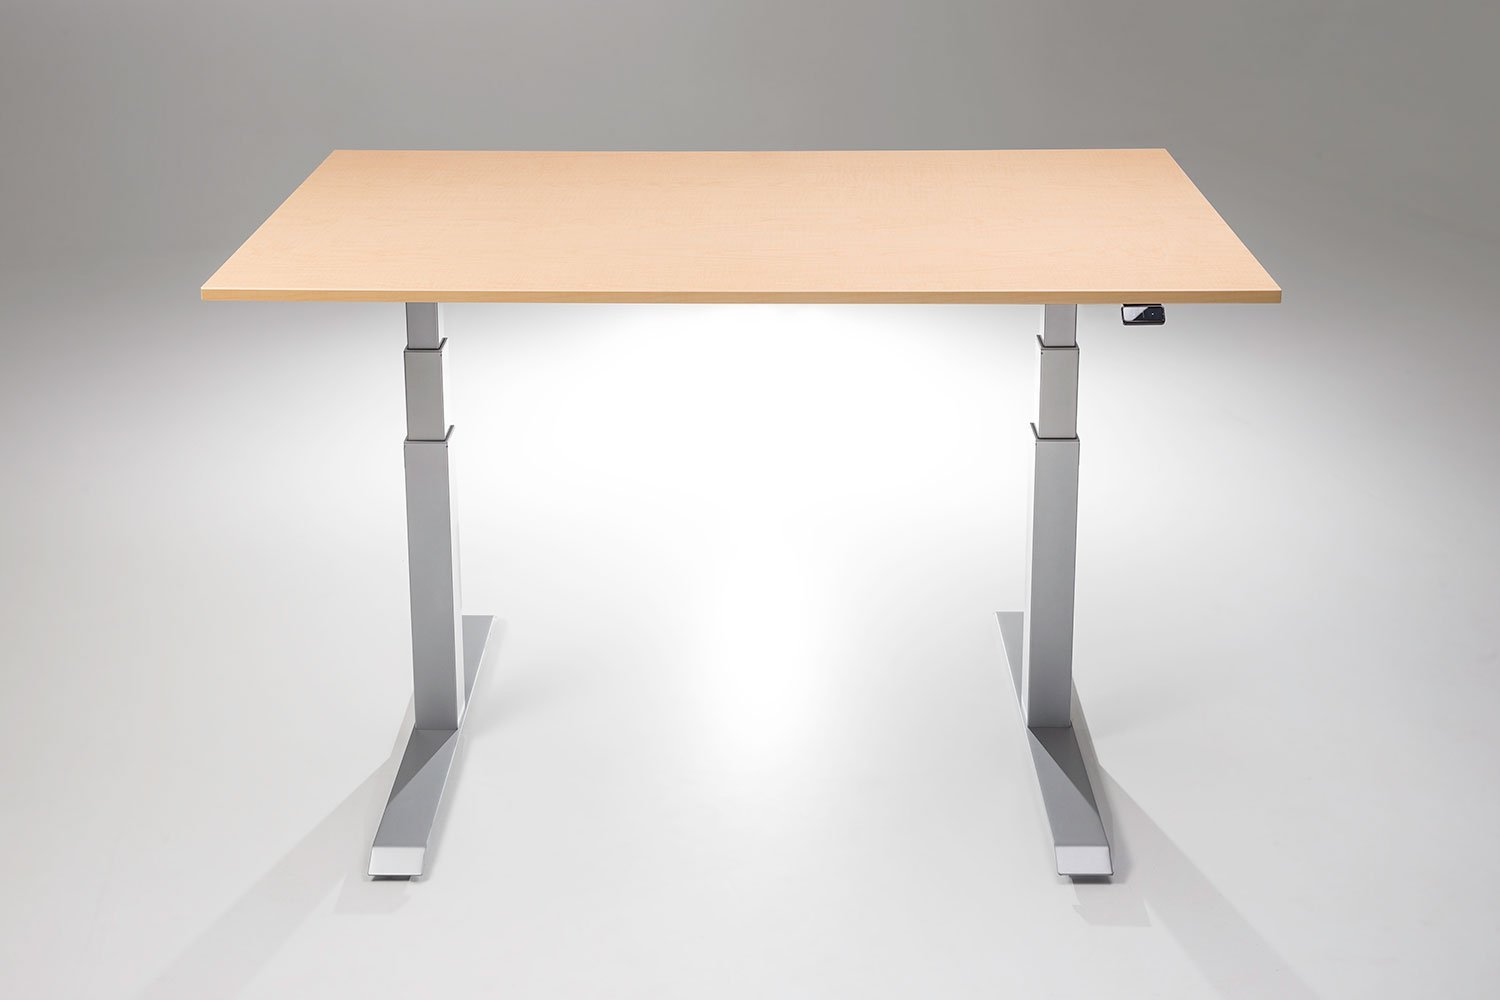 """ModDesk Pro Adjustable Height Standing Desk w/ Silver Frame (Small 24"""" x 40"""" x 3/4"""", Fusion Maple)"""